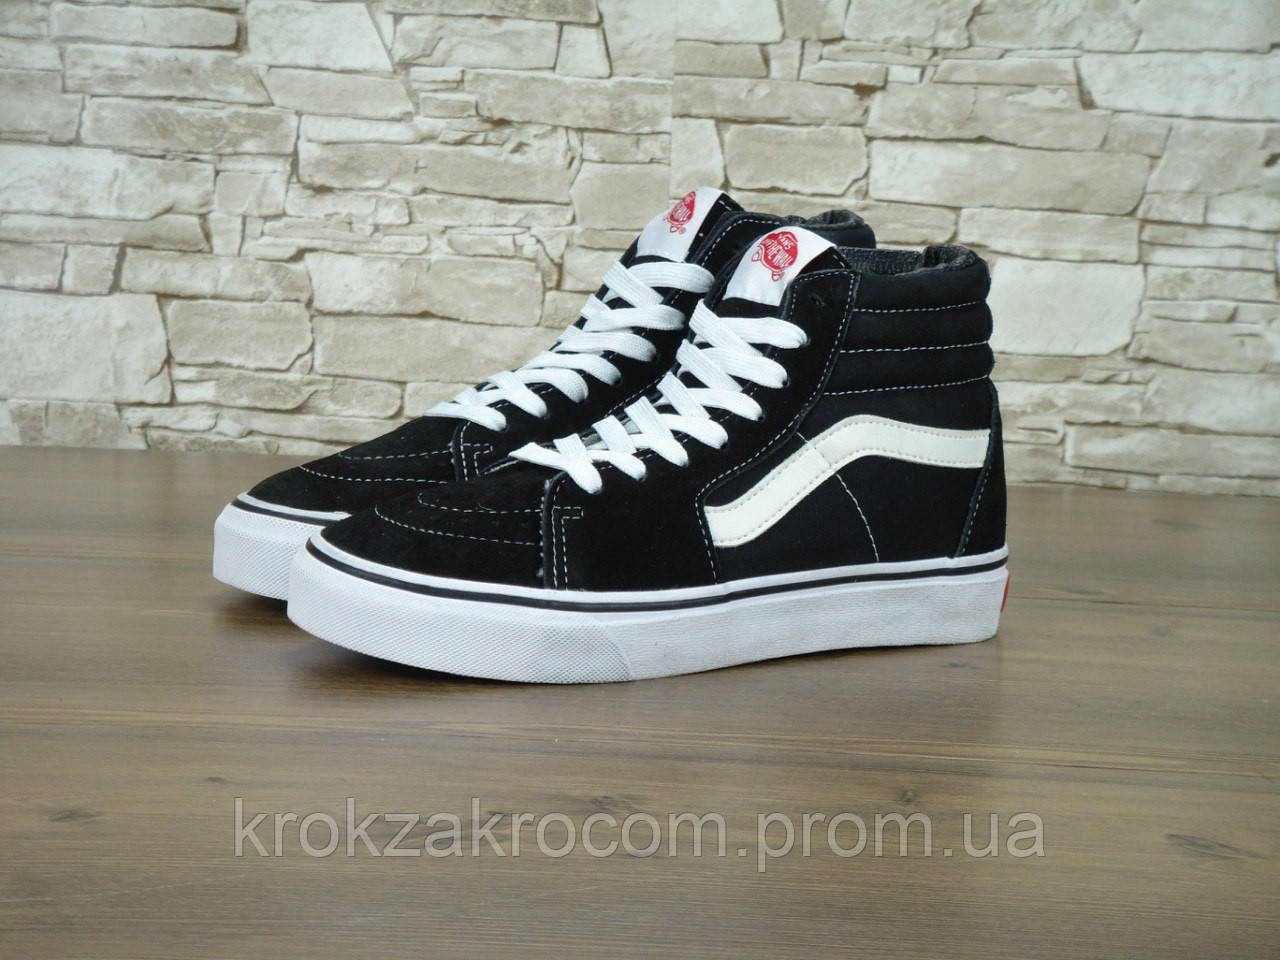 71ab989f6c0 Buy vans old skool replica > OFF77% Discounts